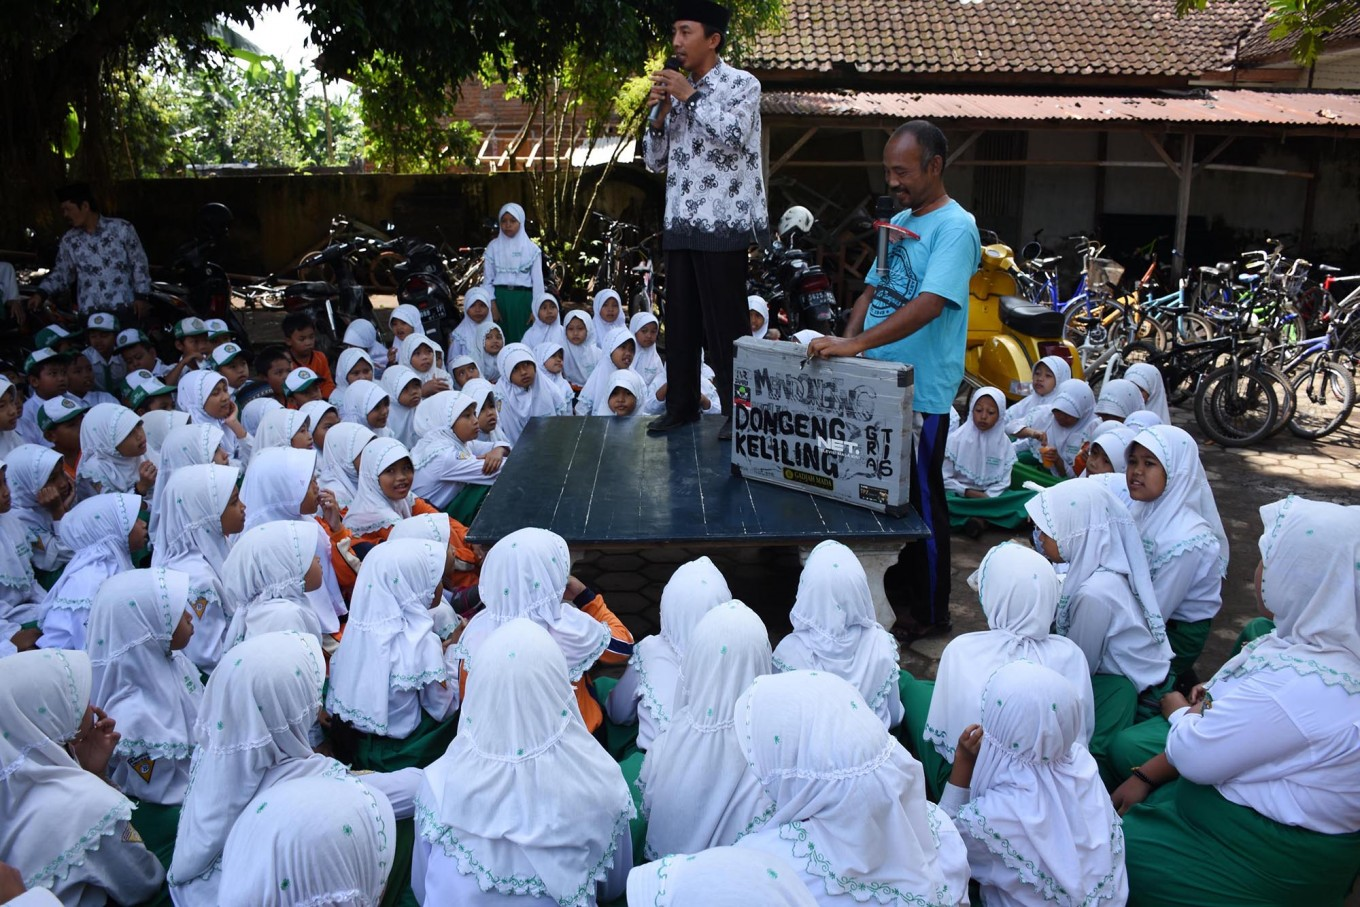 A teacher speaks before Samsudin entertains students on April 4. He told a story about forest conservation and wildlife rescue to the students to give their knowledge on the environment from an early age. JP/Aman Rochman